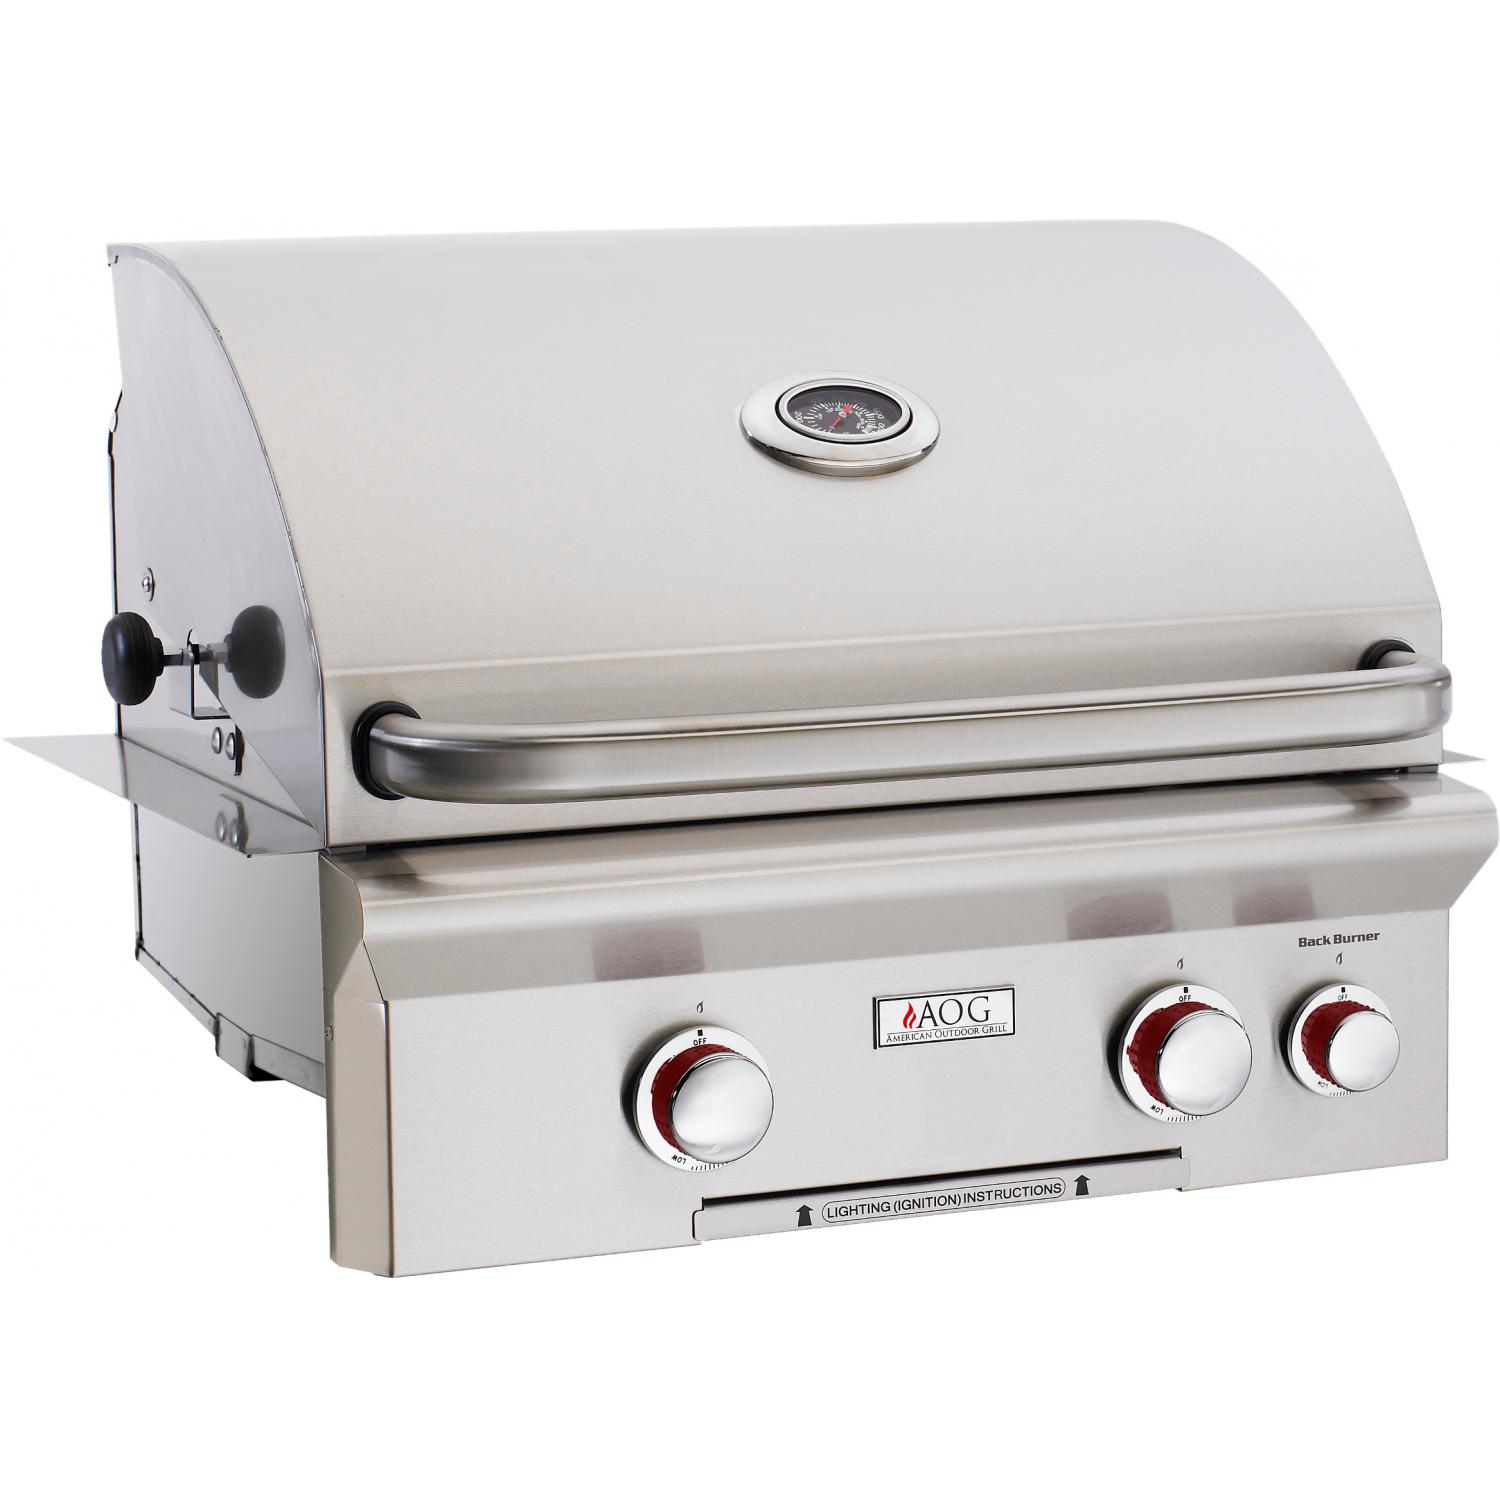 American Outdoor Grill T-Series 24-Inch Built-In Natural Gas Grill With Rotisserie 2894422